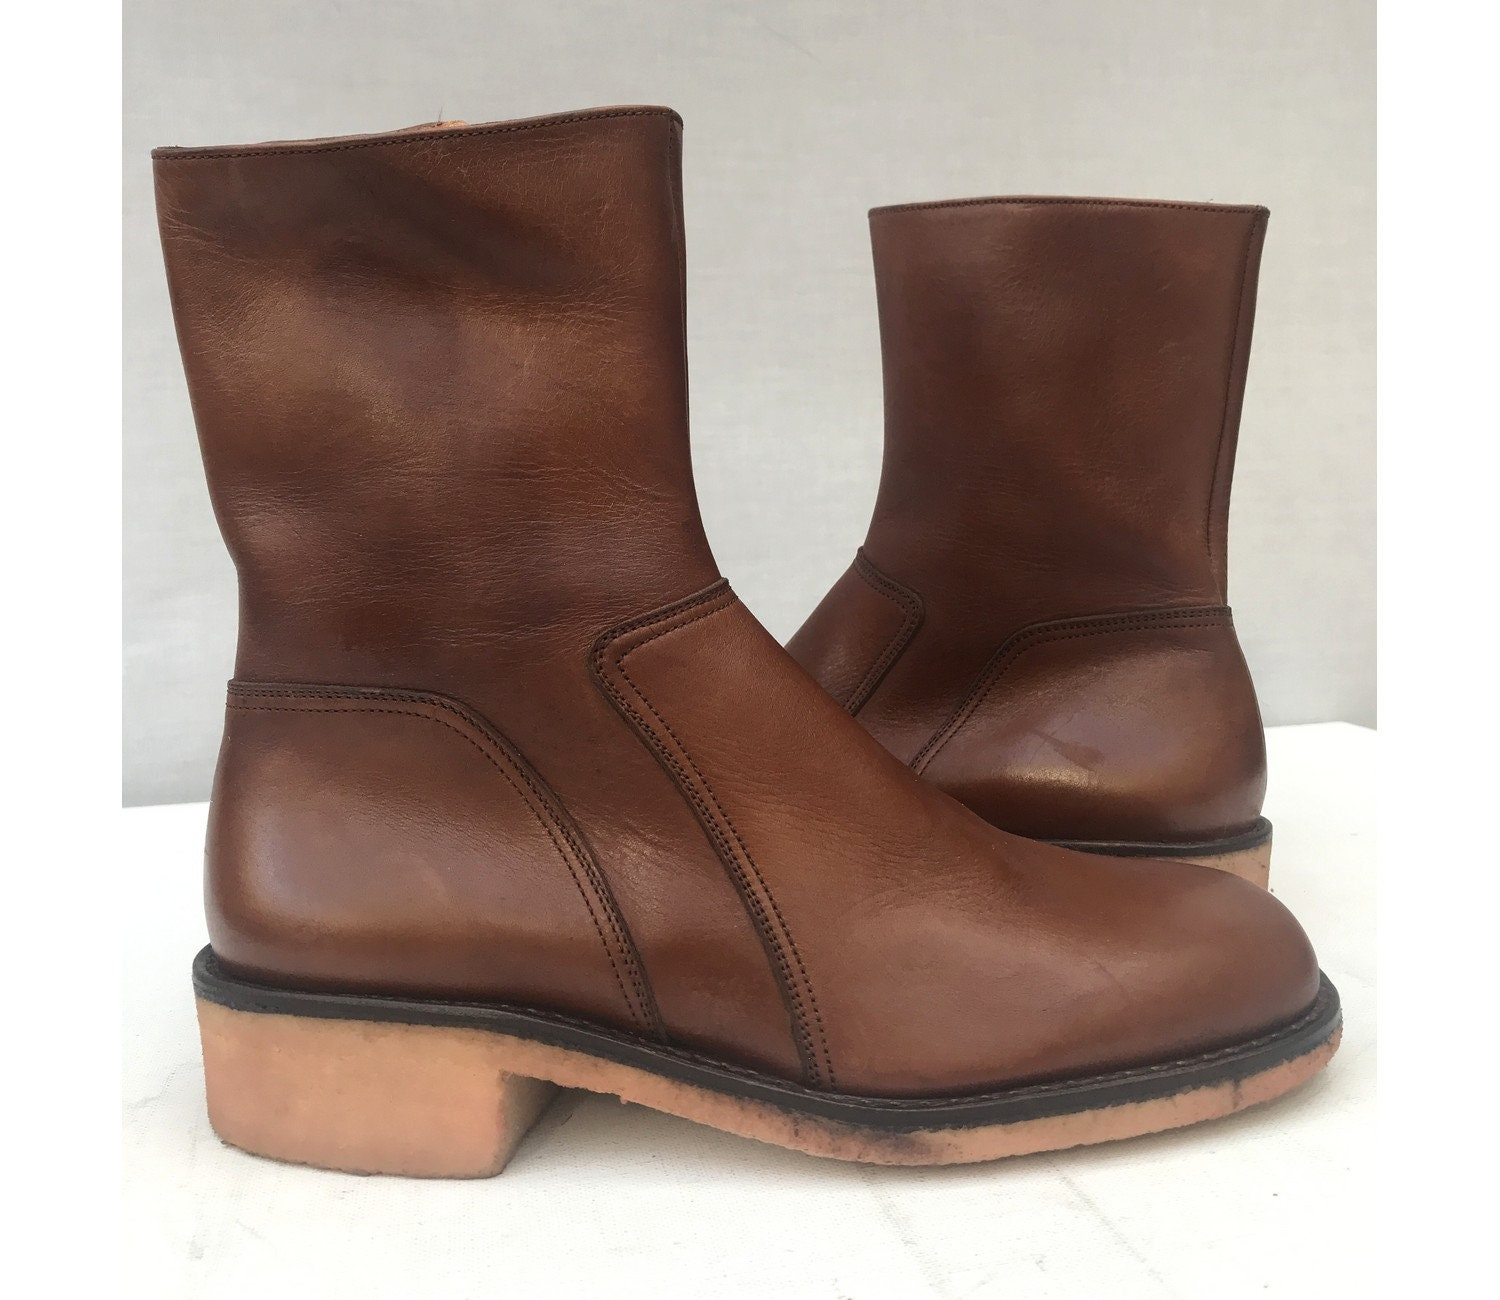 0c6dc947551 Men 1970s New Old Stock Brown Leather Bally Ankle BOOTS // size eu 39 - uk  5.5- us 6